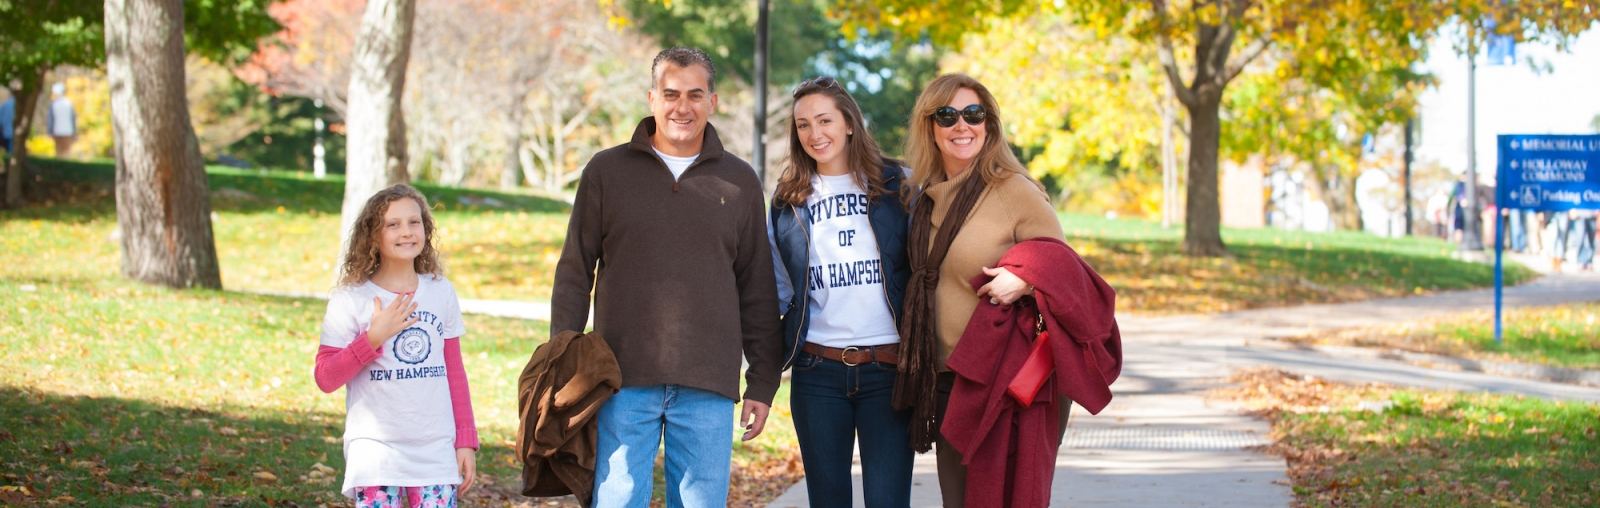 UNH student (second from right) with her family on Durham campus Main St.